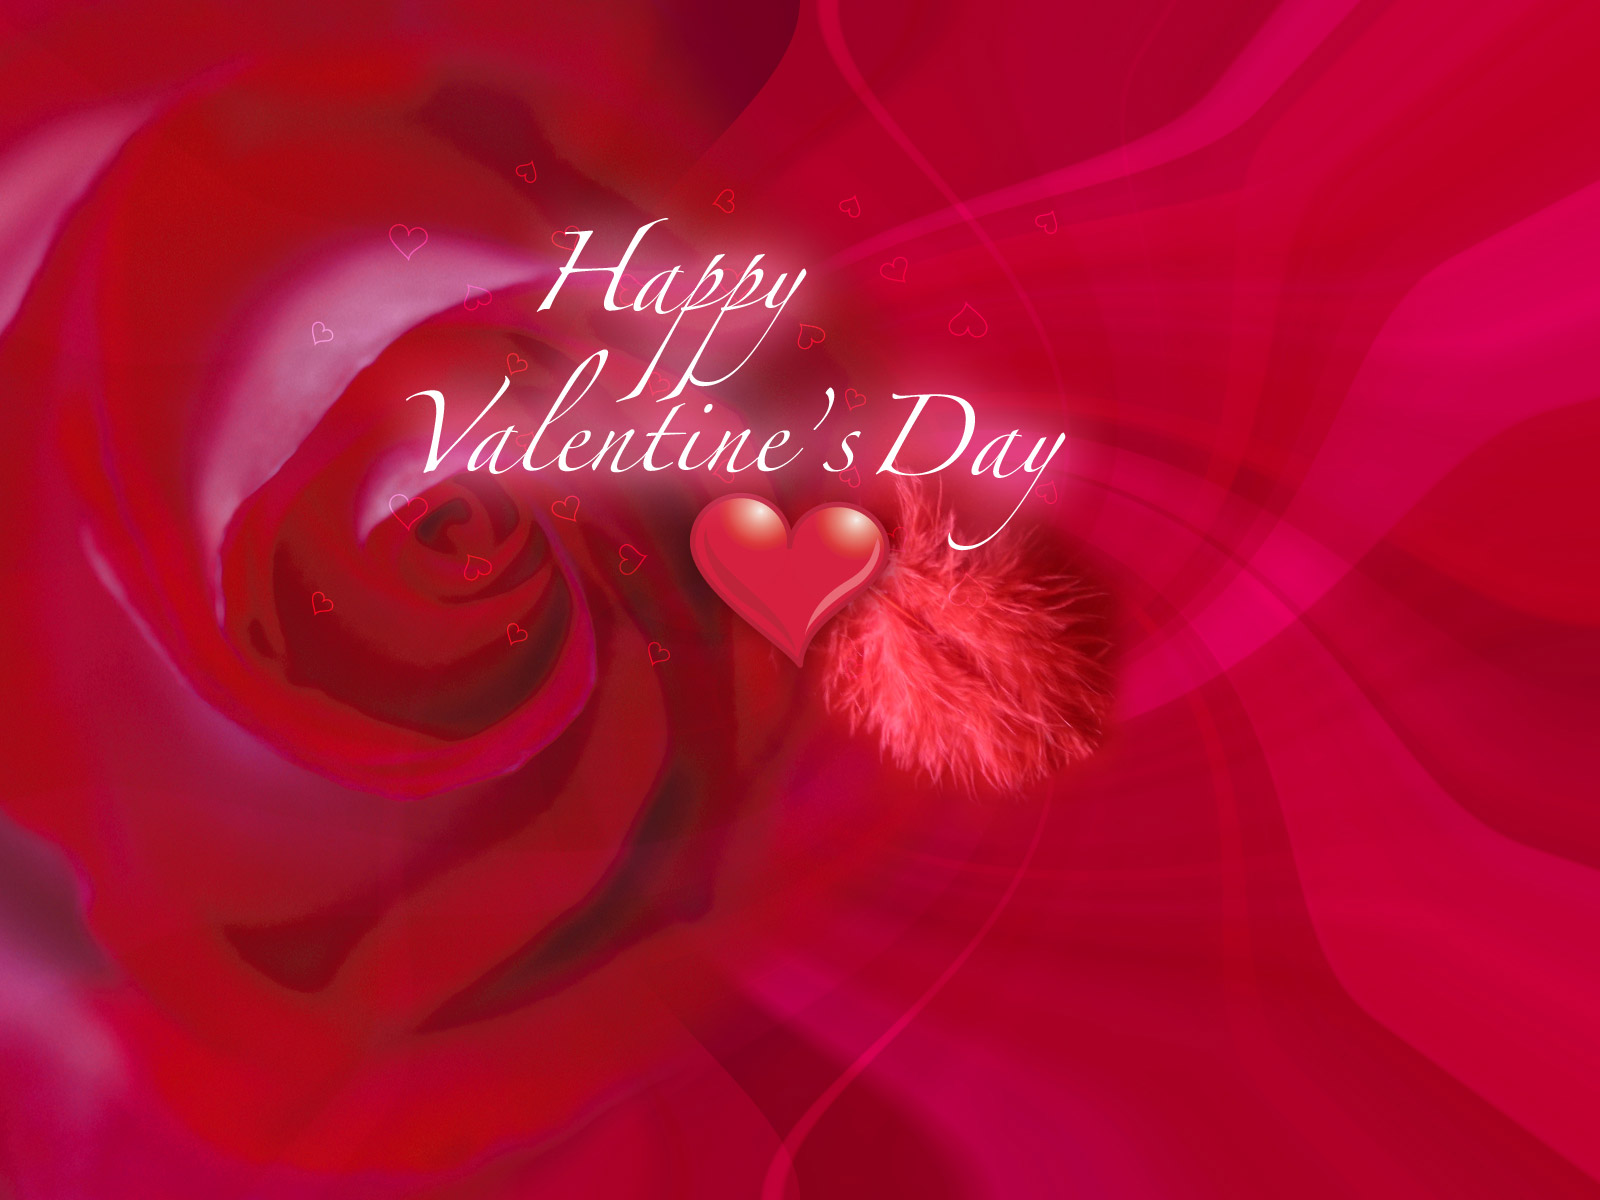 Happy Valentine S Day Greeting Wishes Hq Full Hd Wallpapers Free